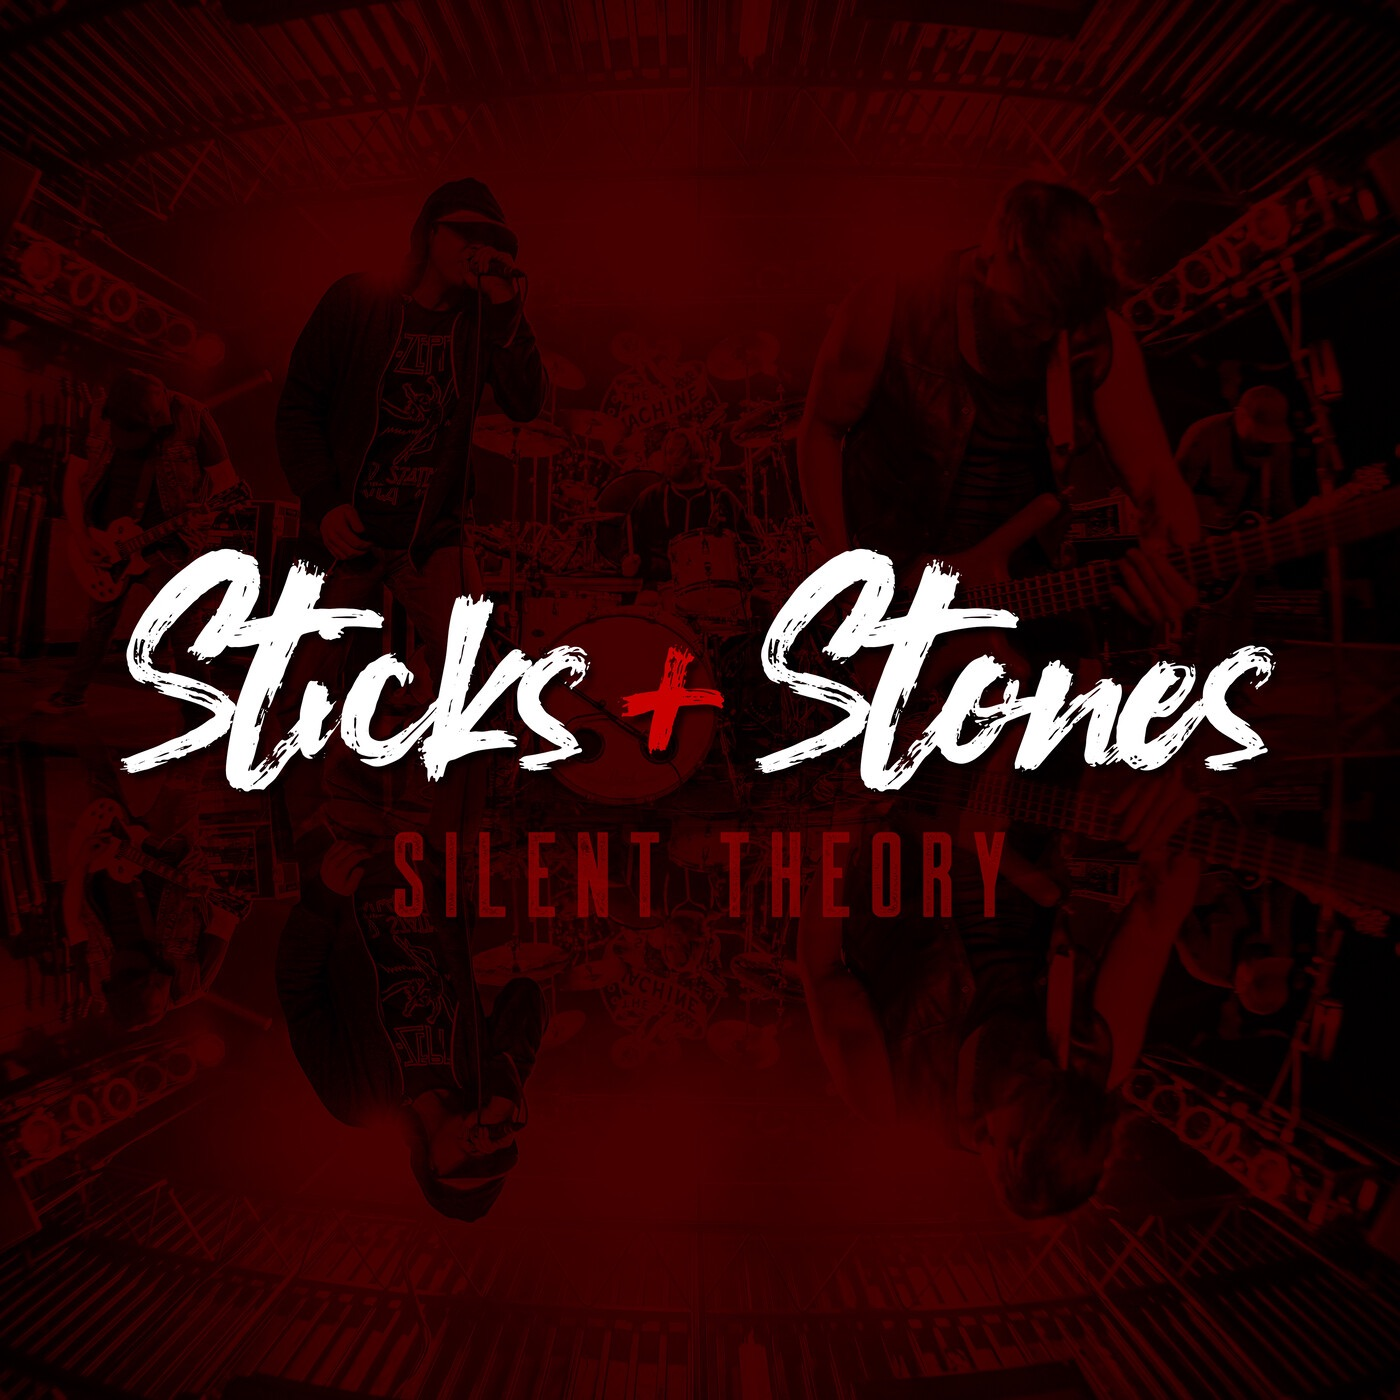 Silent Theory - Sticks & Stones [single] (2019)